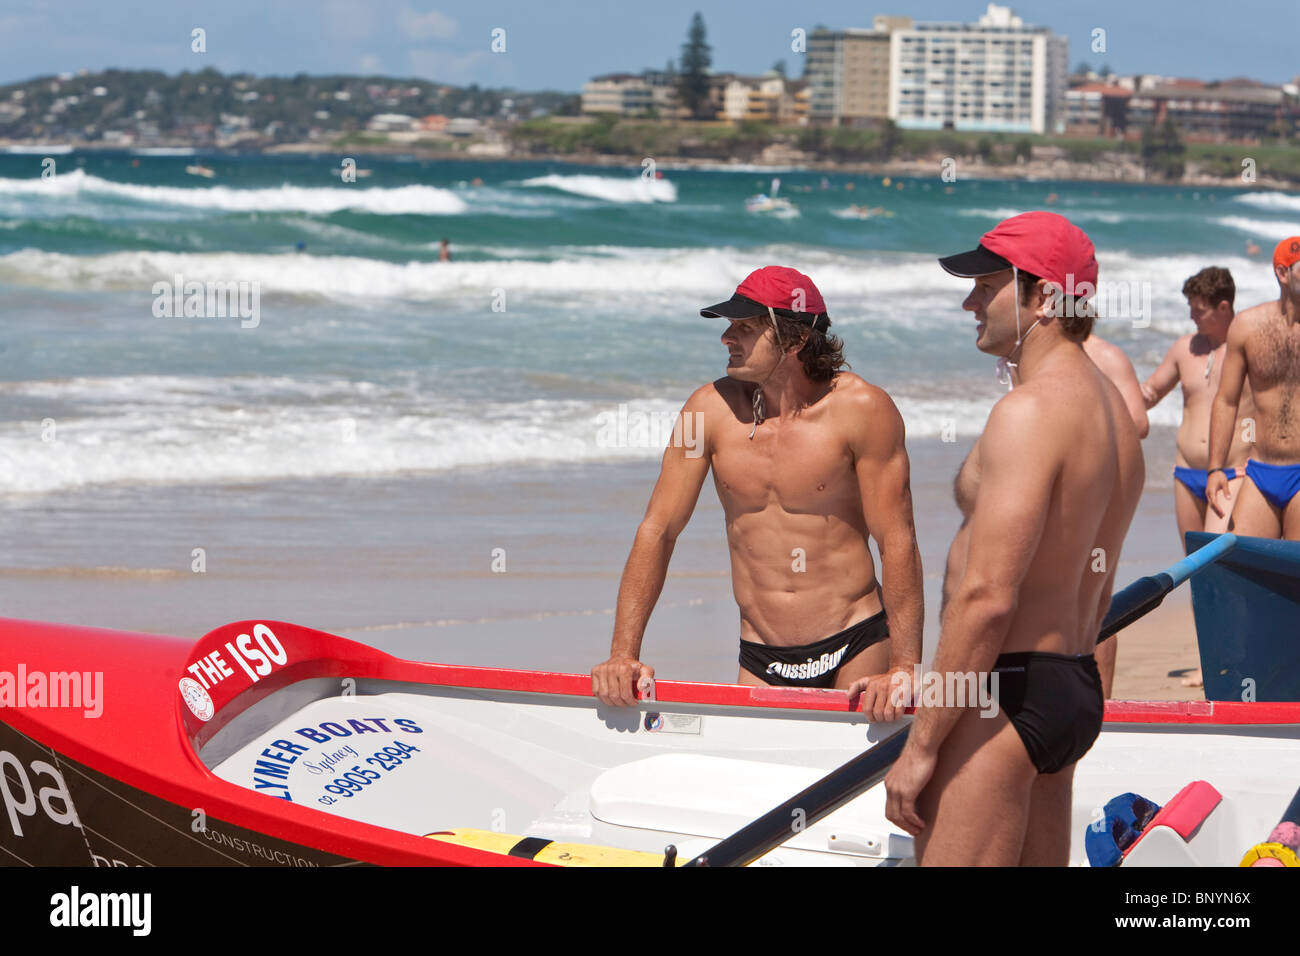 Surfboat crew during a surf carnival at Cronulla Beach.  Sydney, New South Wales, AUSTRALIA - Stock Image